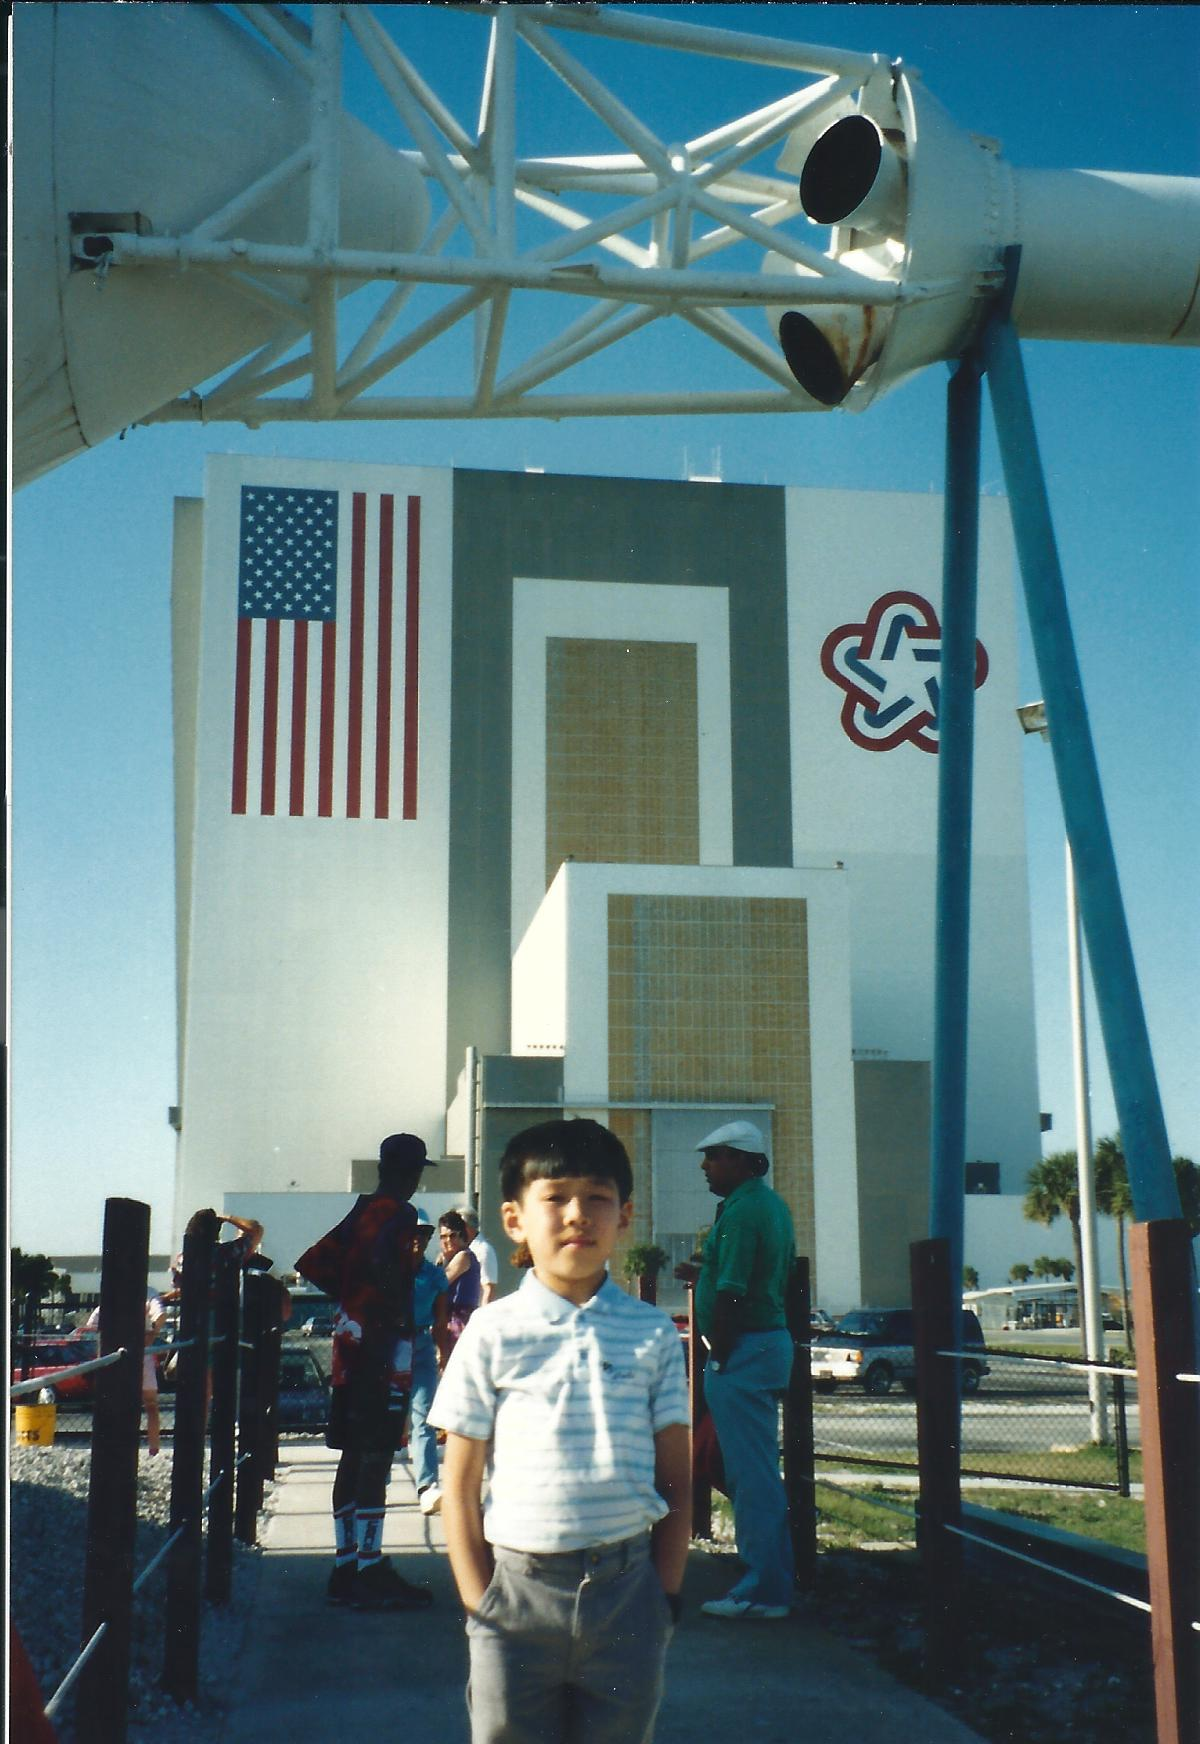 A proud young American.